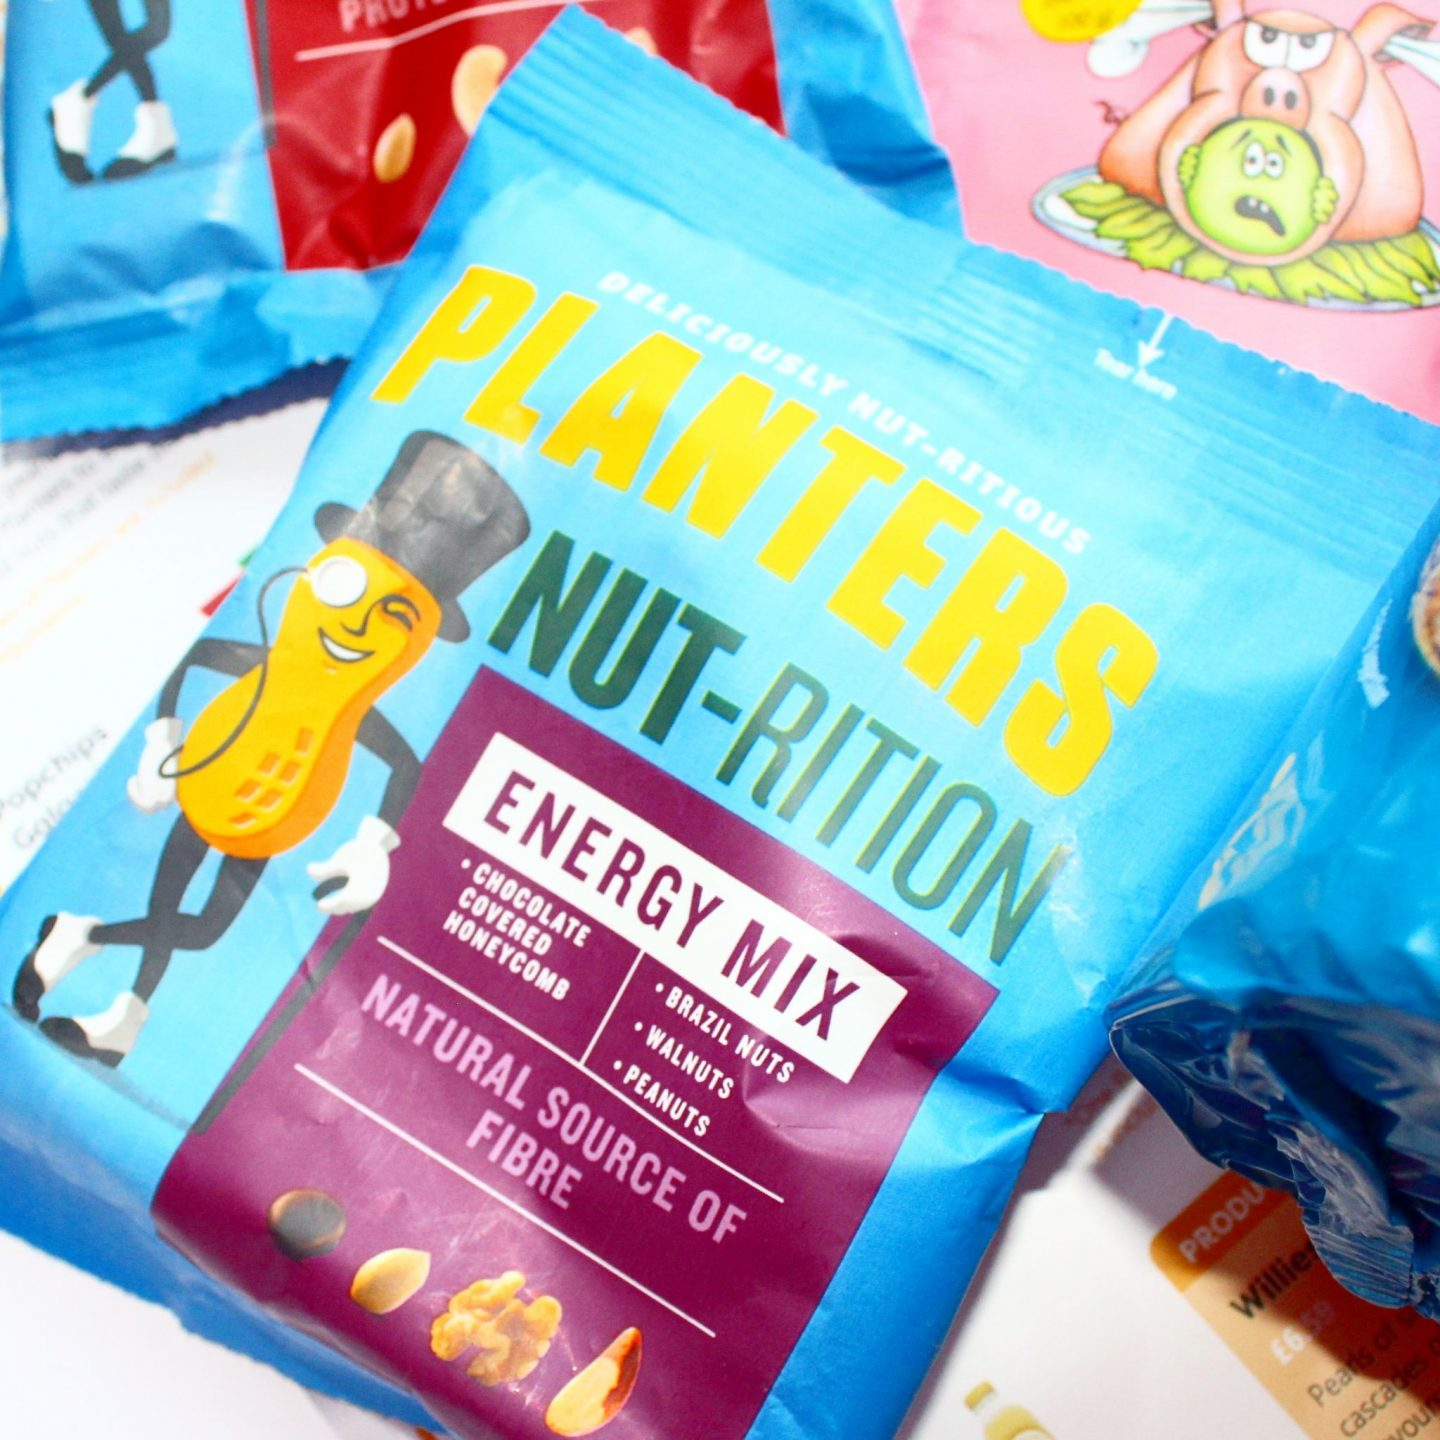 Degustabox | Planters Dried Fruit and Nut Energy Mix